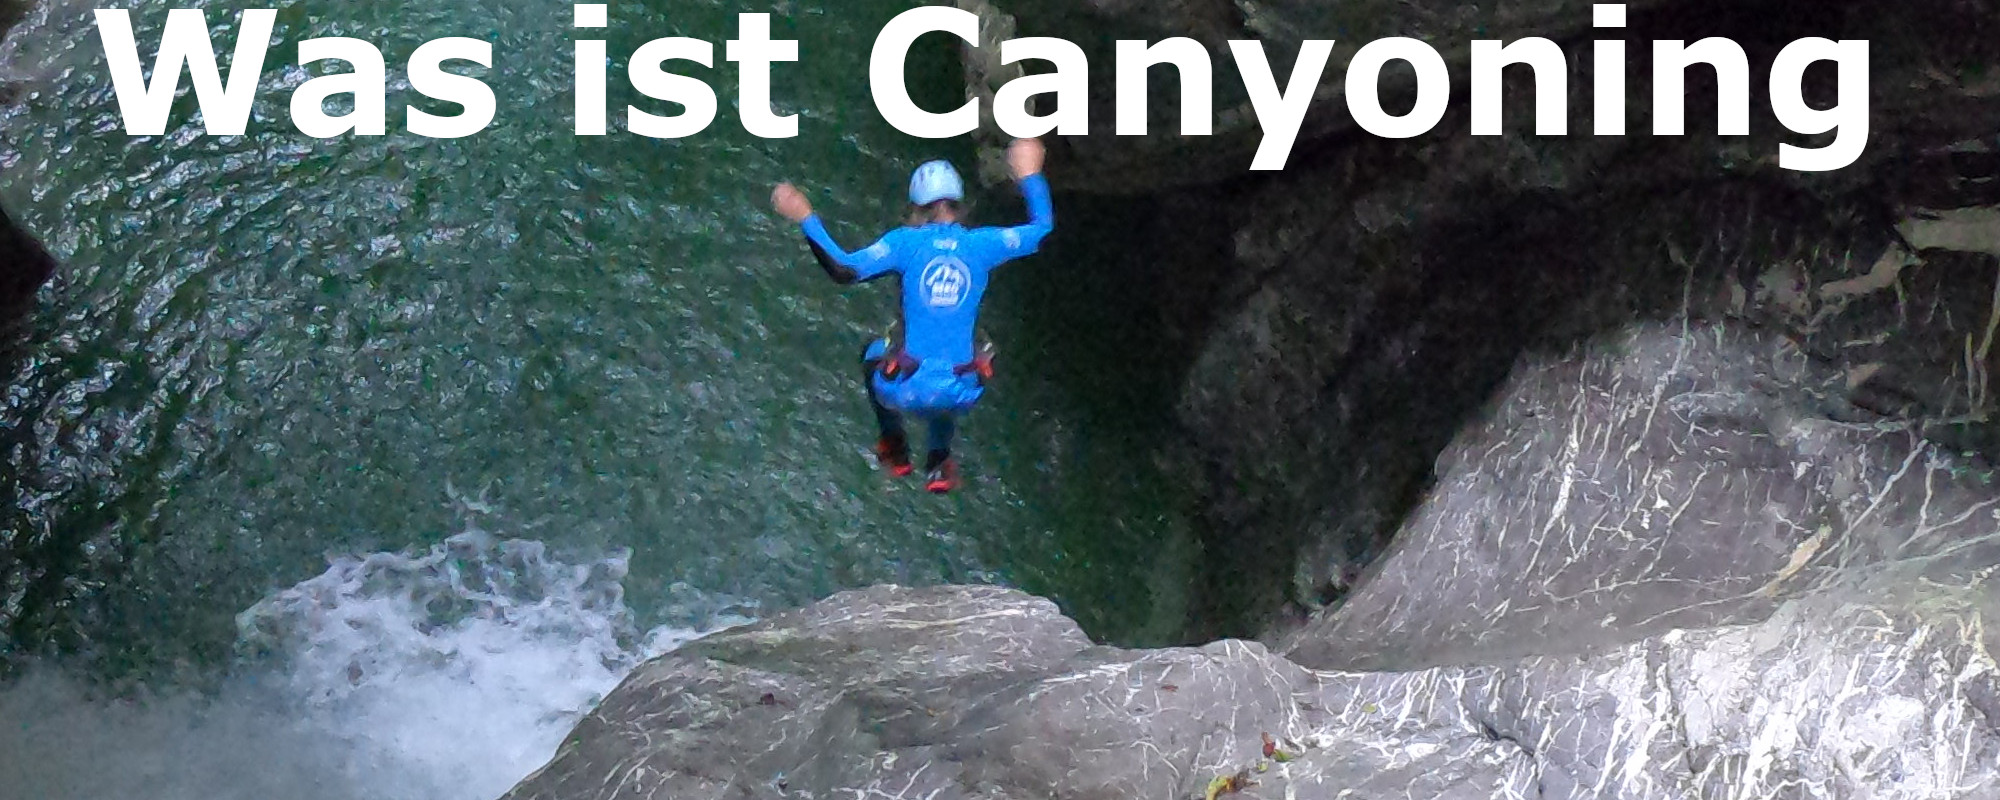 Was ist Canyoning